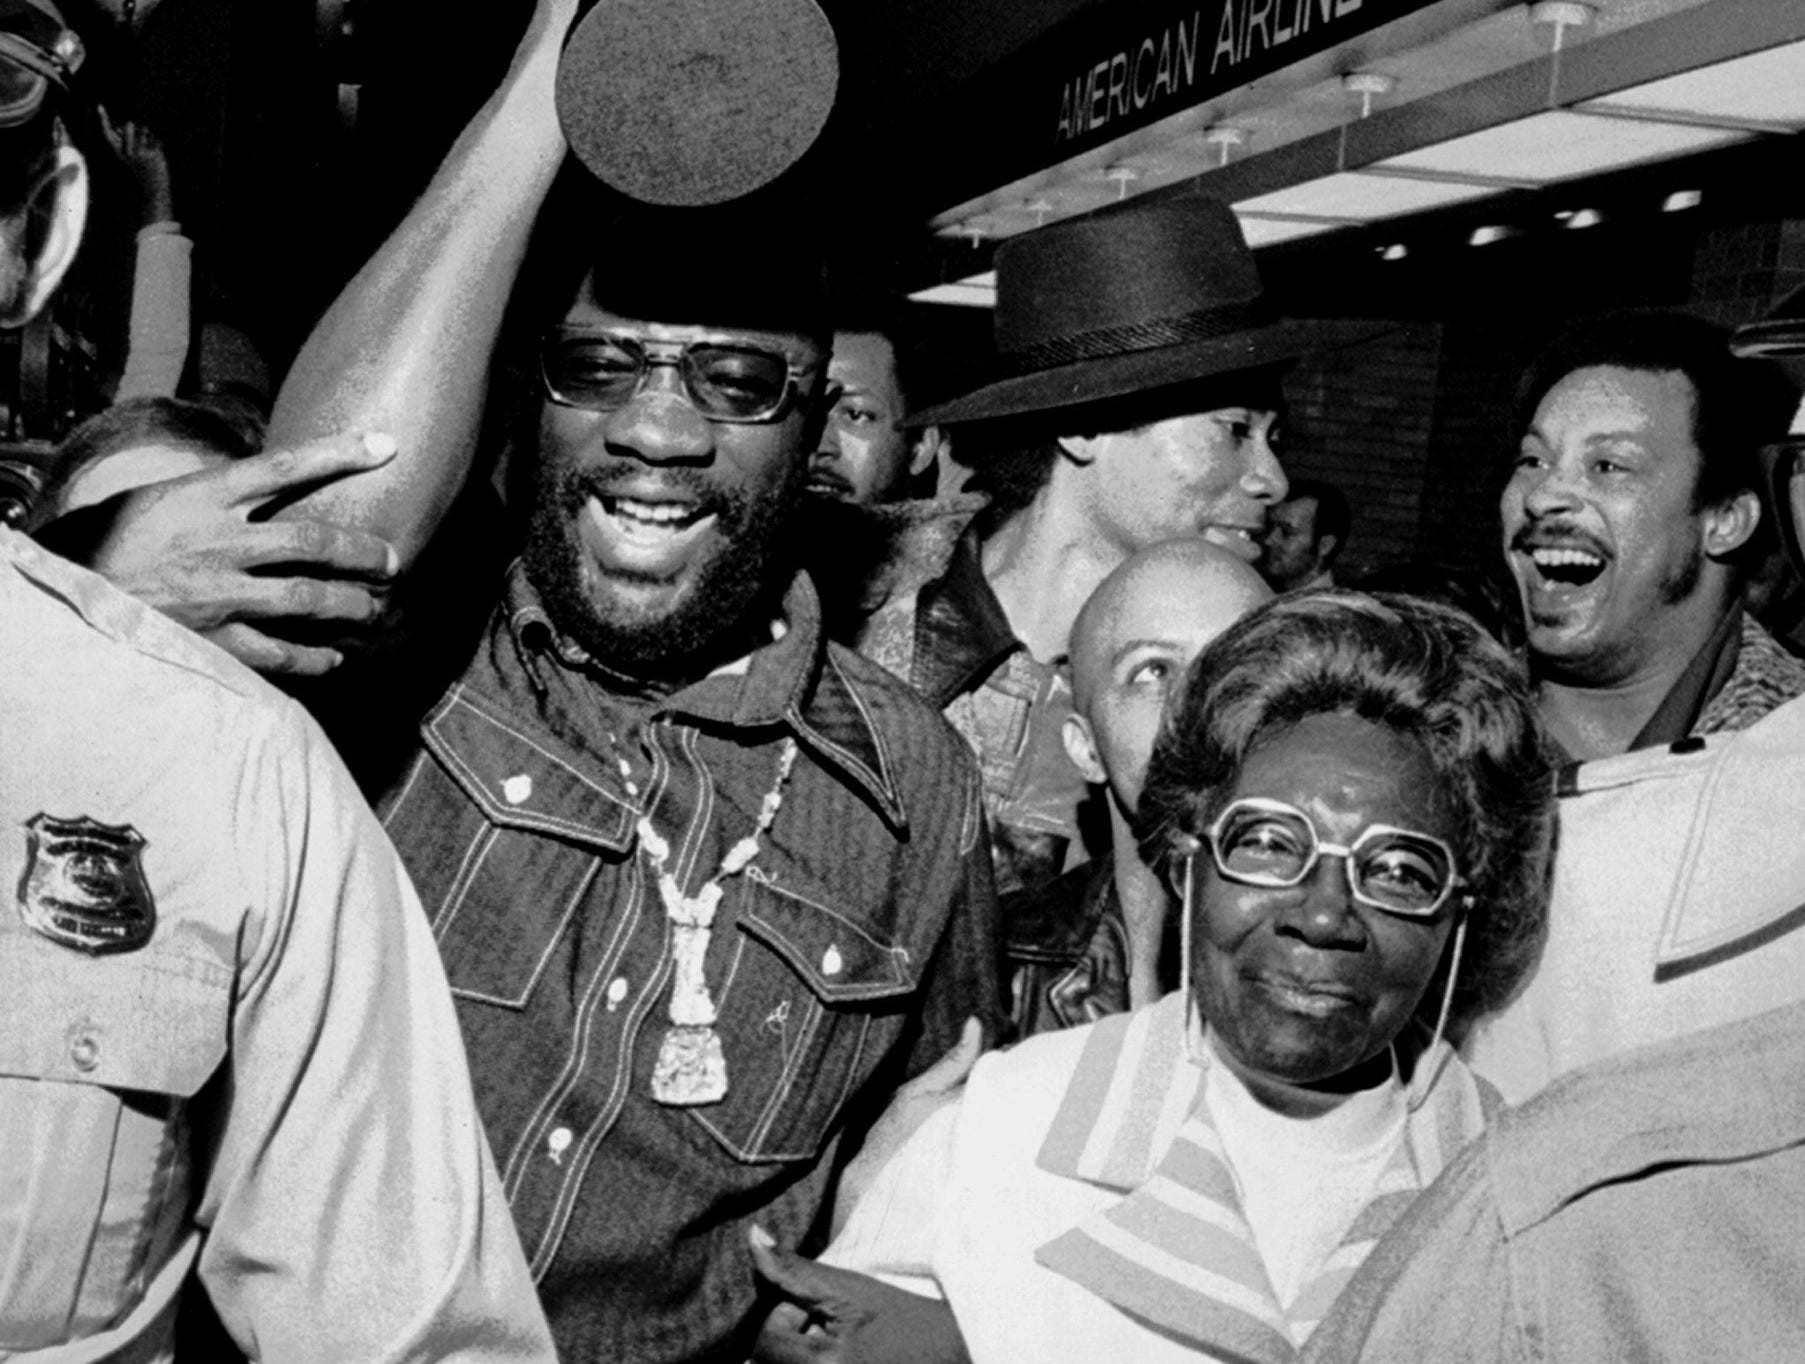 """With his Oscar in one hand and """"Mama Wade"""" in the other, Academy Award winner Isaac Hayes came home to Memphis April 11, 1972. At his side throughout the official welcoming ceremonies was Mrs. Rushia Wade, the grandmother to whom Hayes, 29, attributes his latest, and all other achievements. A crowd estimated at 1,000 screaming admirers filled Memphis Metropolitan Airport to greet Hayes, who won the Oscar for the best song, """"Theme from Shaft."""" In his acceptance in Hollywood the previous night, Hayes thanked his grandmother for """"keeping me on the paths of righteousness"""" and said that the Oscar was an 80th birthday present for her. Isaac Hayes was born on 20 Aug 42."""